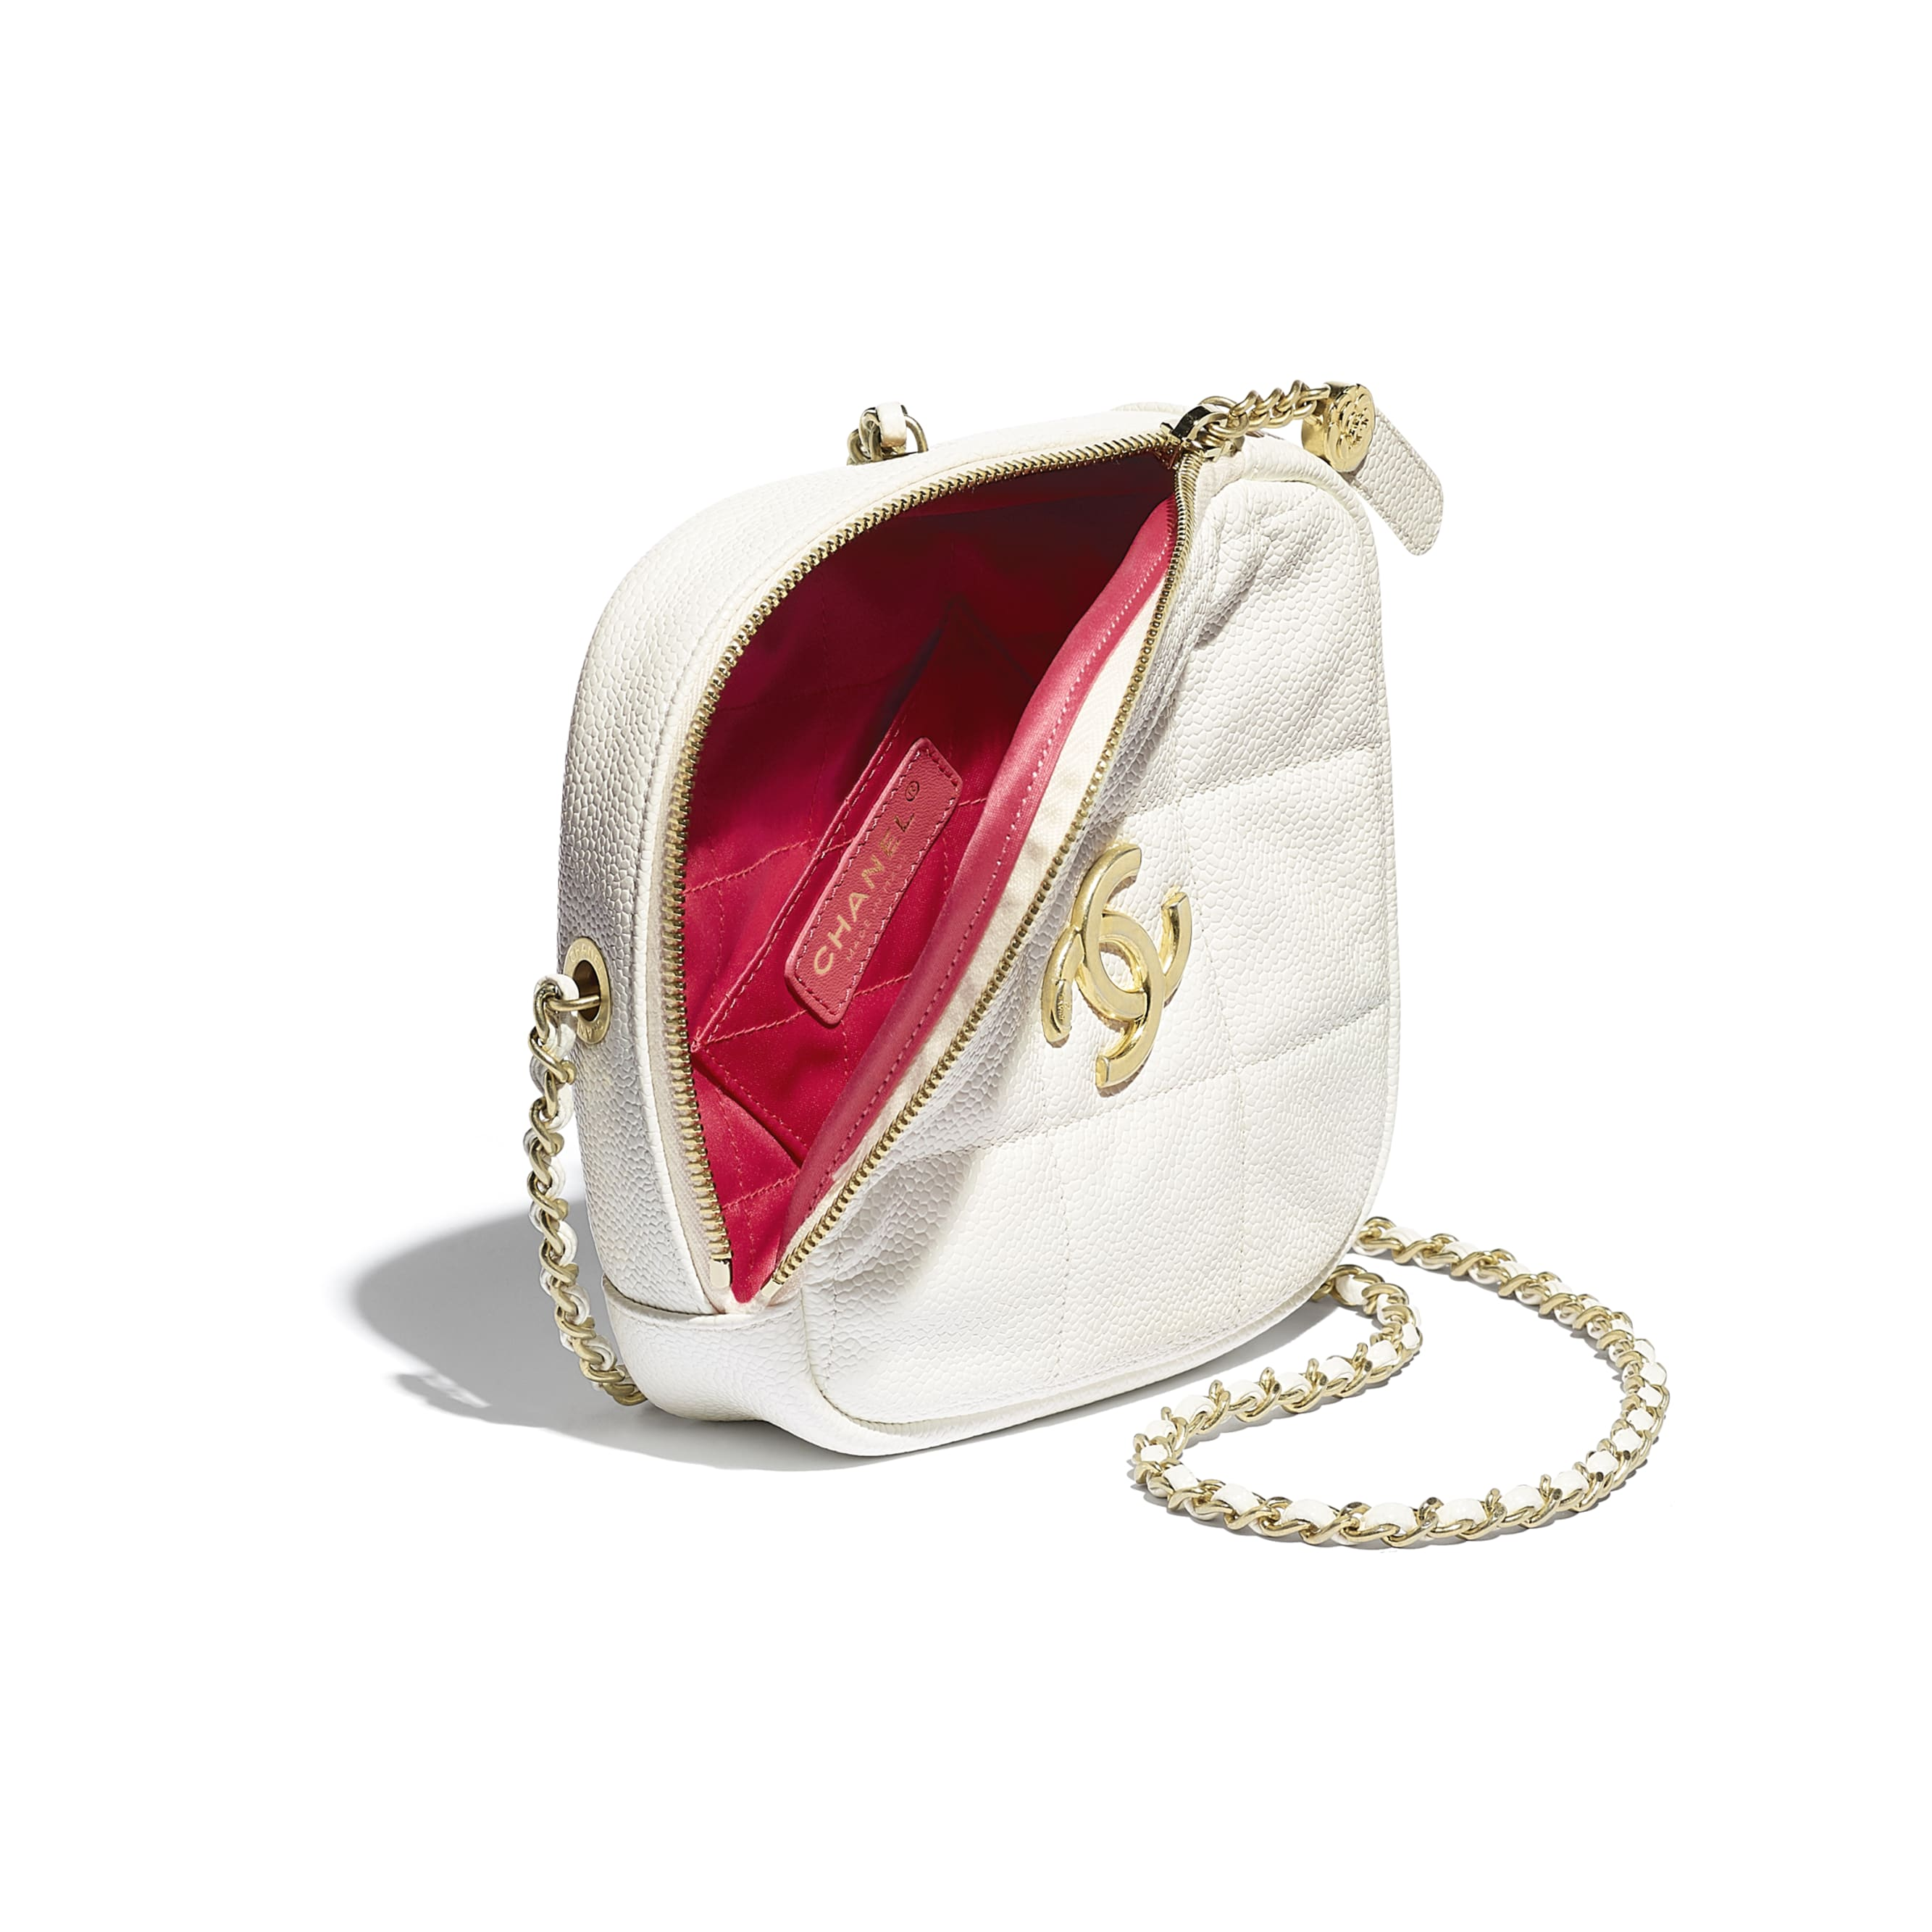 Small Diamond Bag - White - Grained Calfskin & Gold-Tone Metal - CHANEL - Other view - see standard sized version